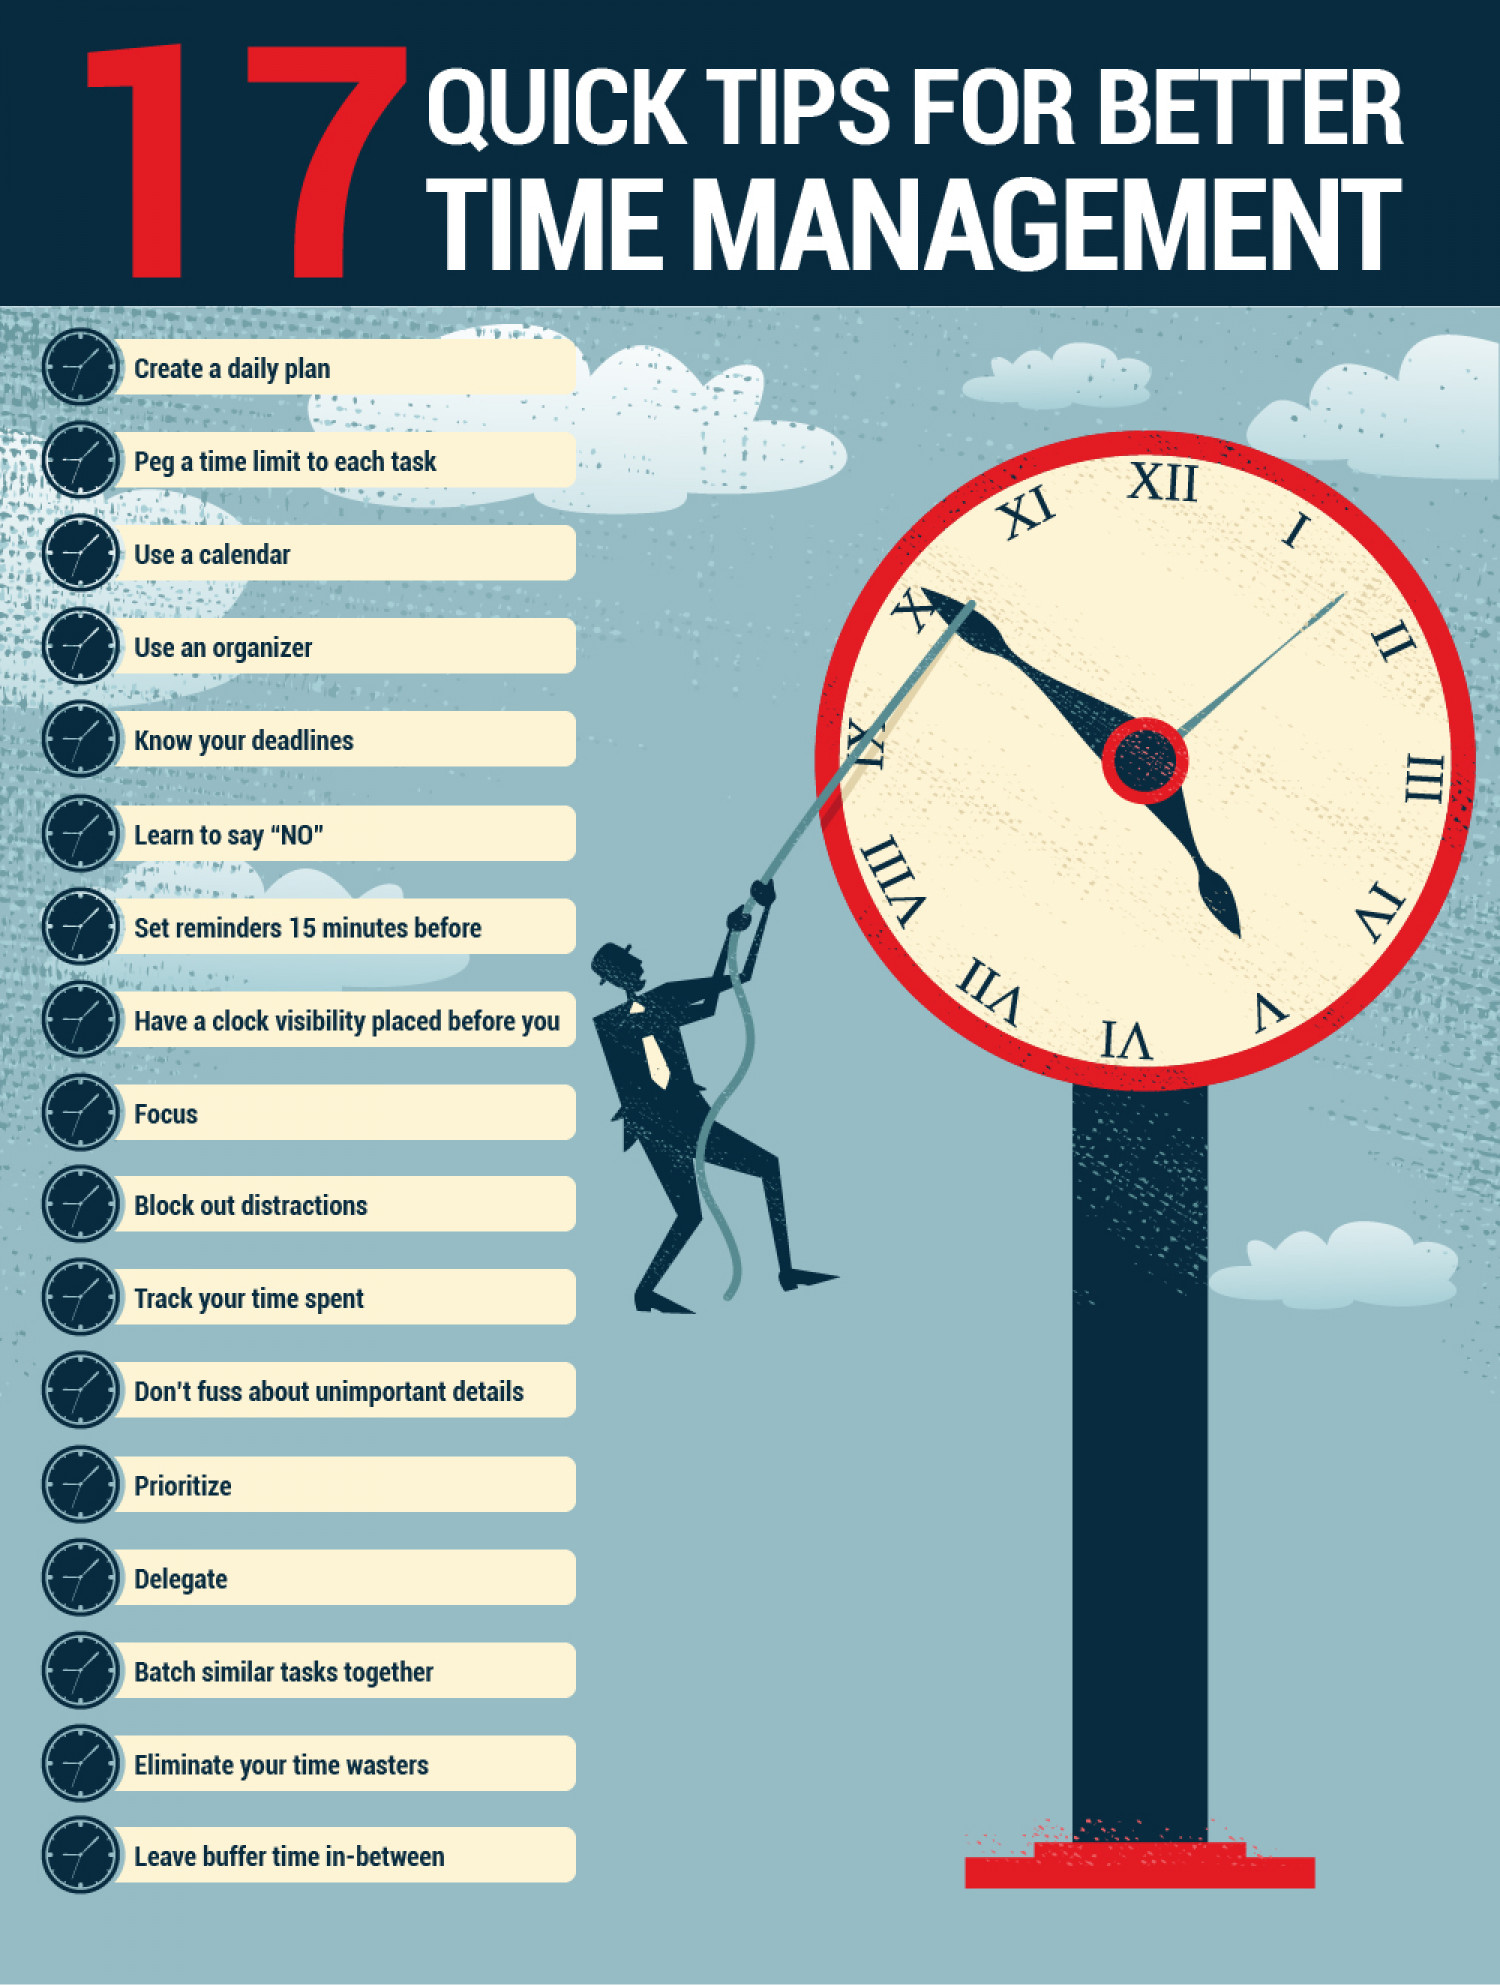 Essay on how you are working to improve time management skills